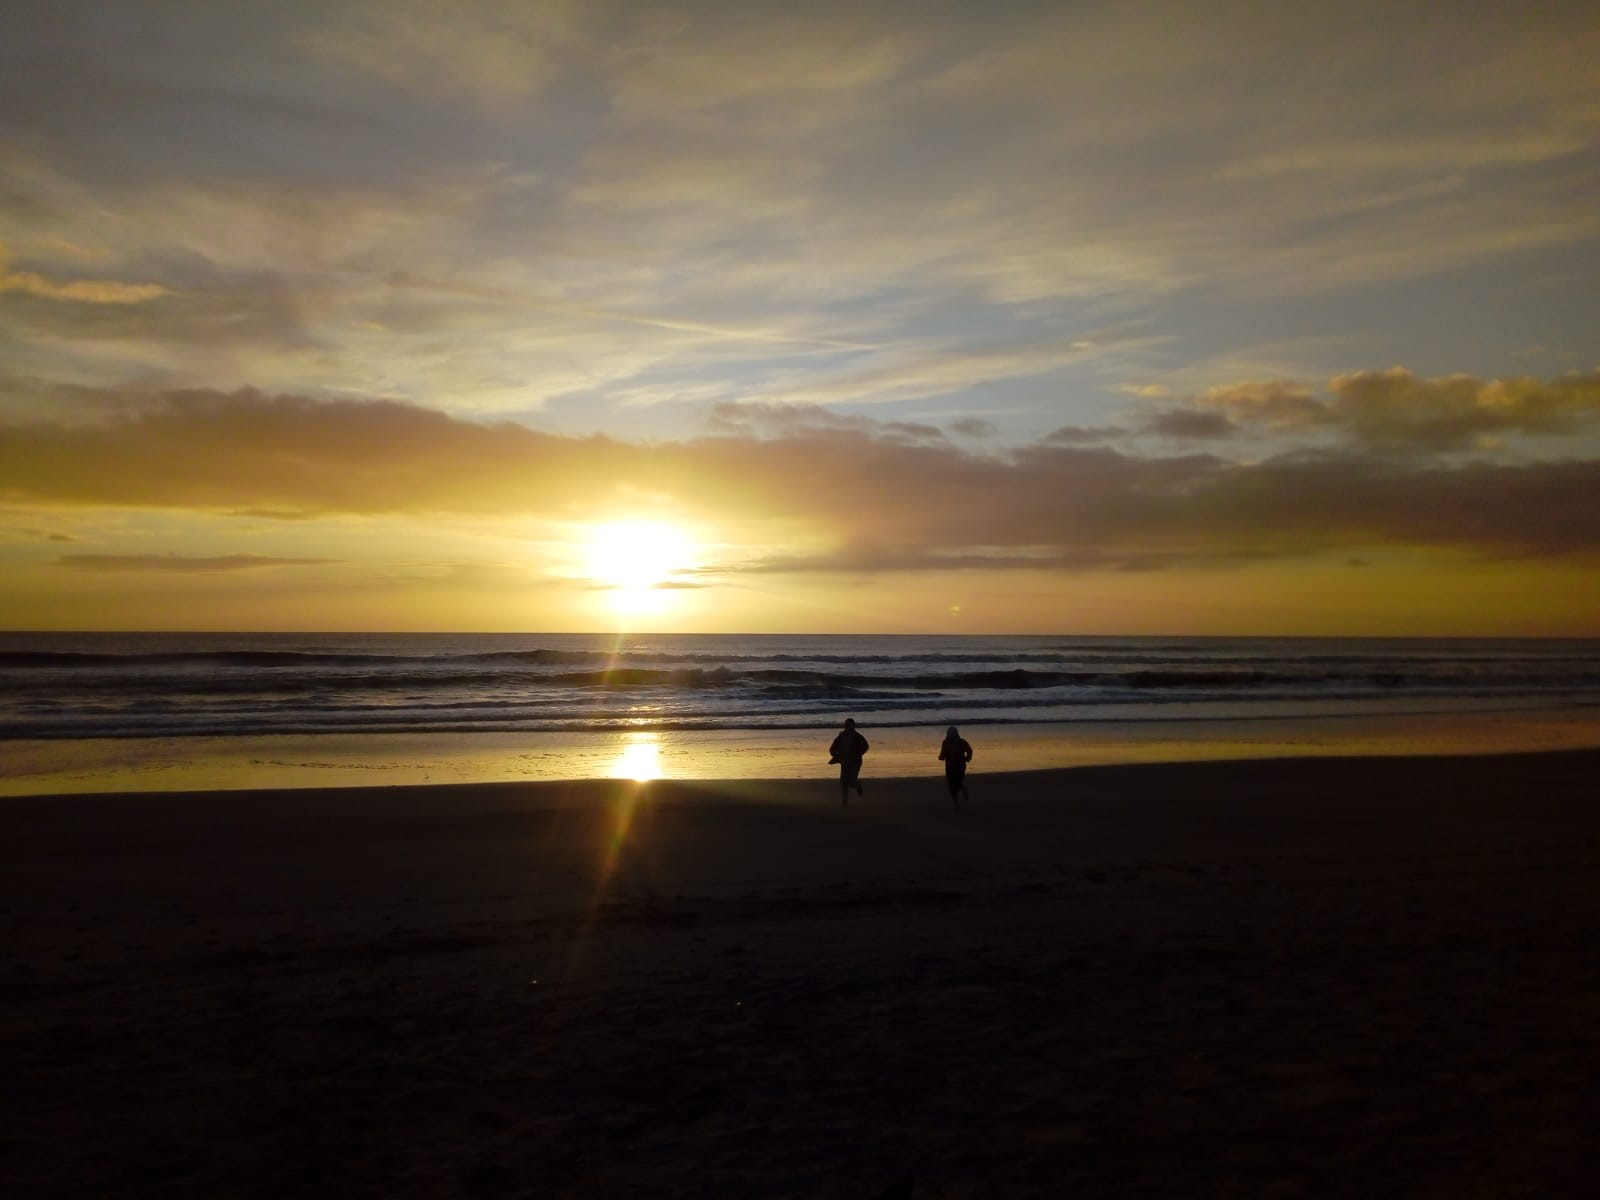 Photo of sunrise, complentary of Ruth O'Connor